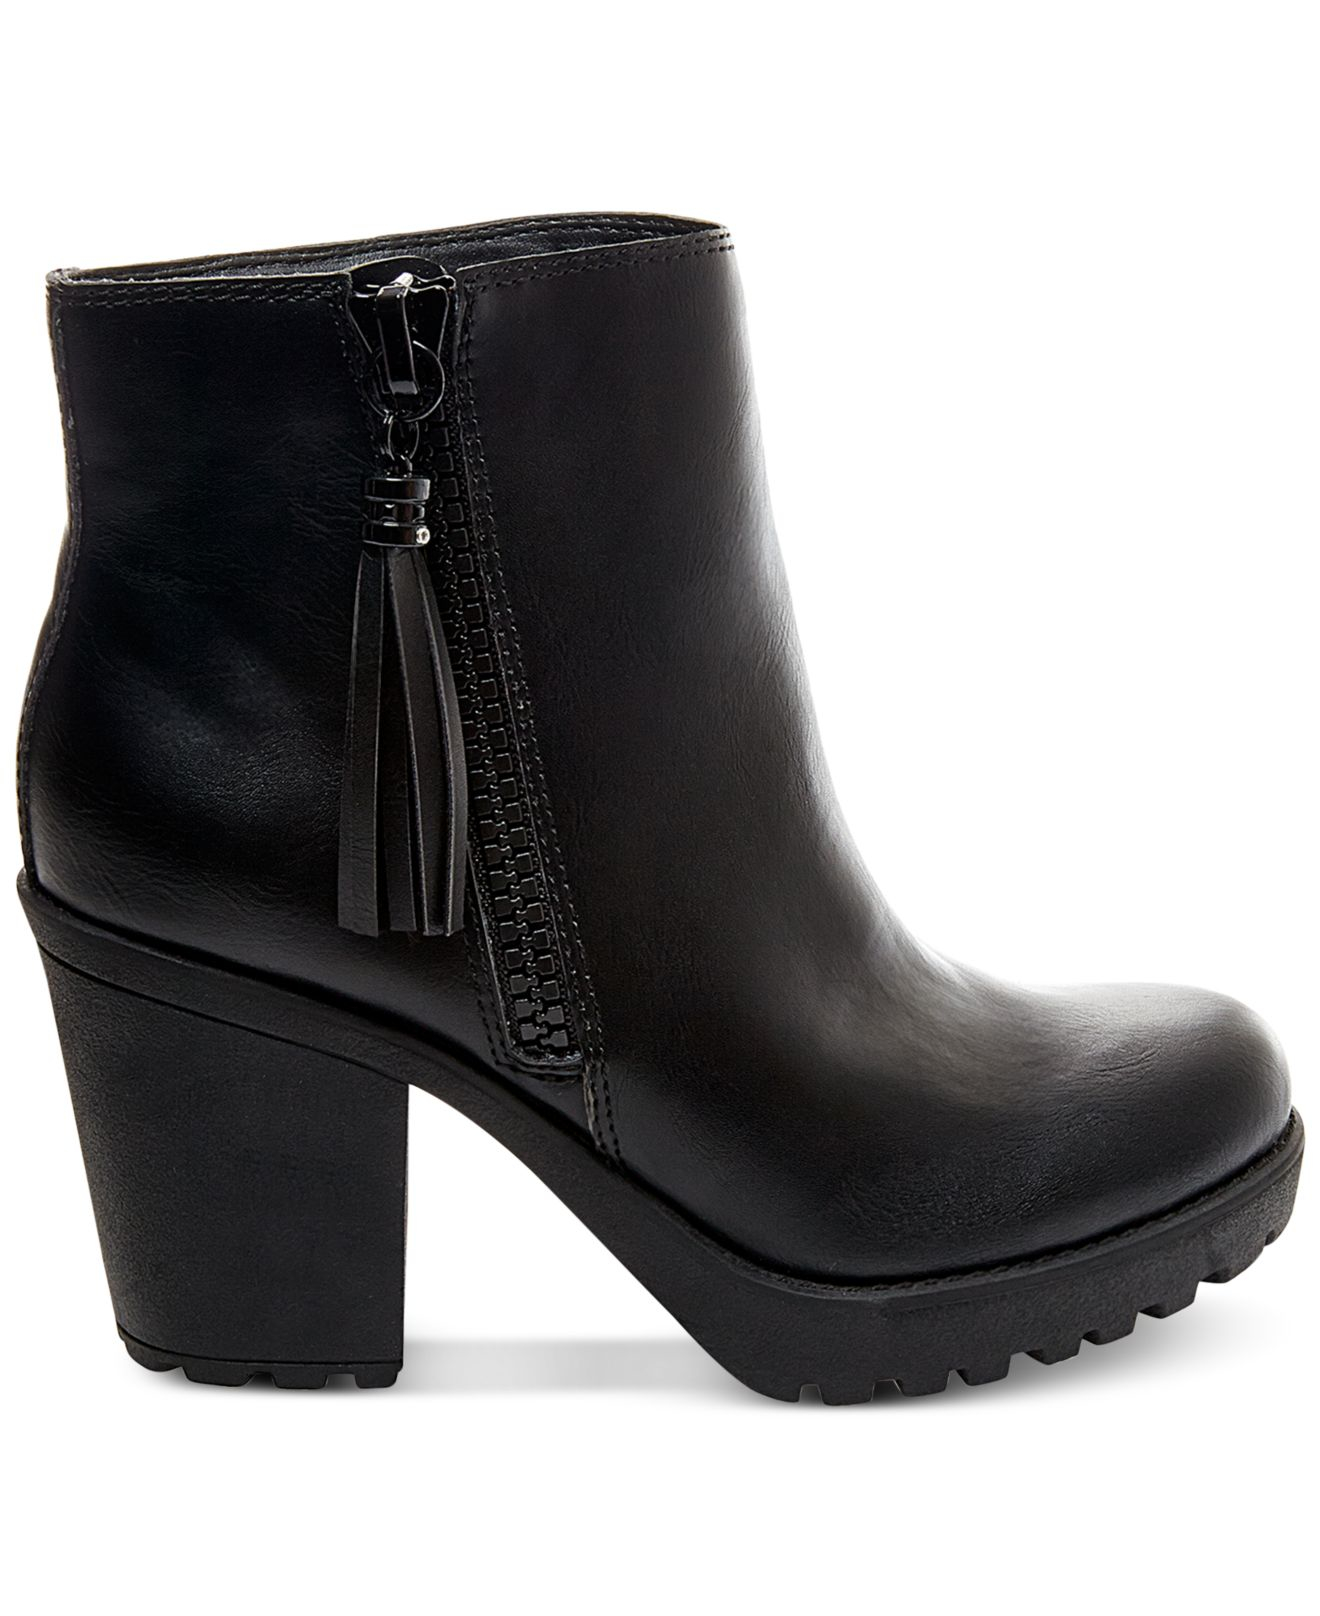 Milanoo offers you various choices for versatile and stylish women's ankle boots, booties and ankle boots no matter you are in jeans or flirty frocks. Ranging from hot black ankle boots or platform casual booties to lace up ankle boots to sexy high heels booties.